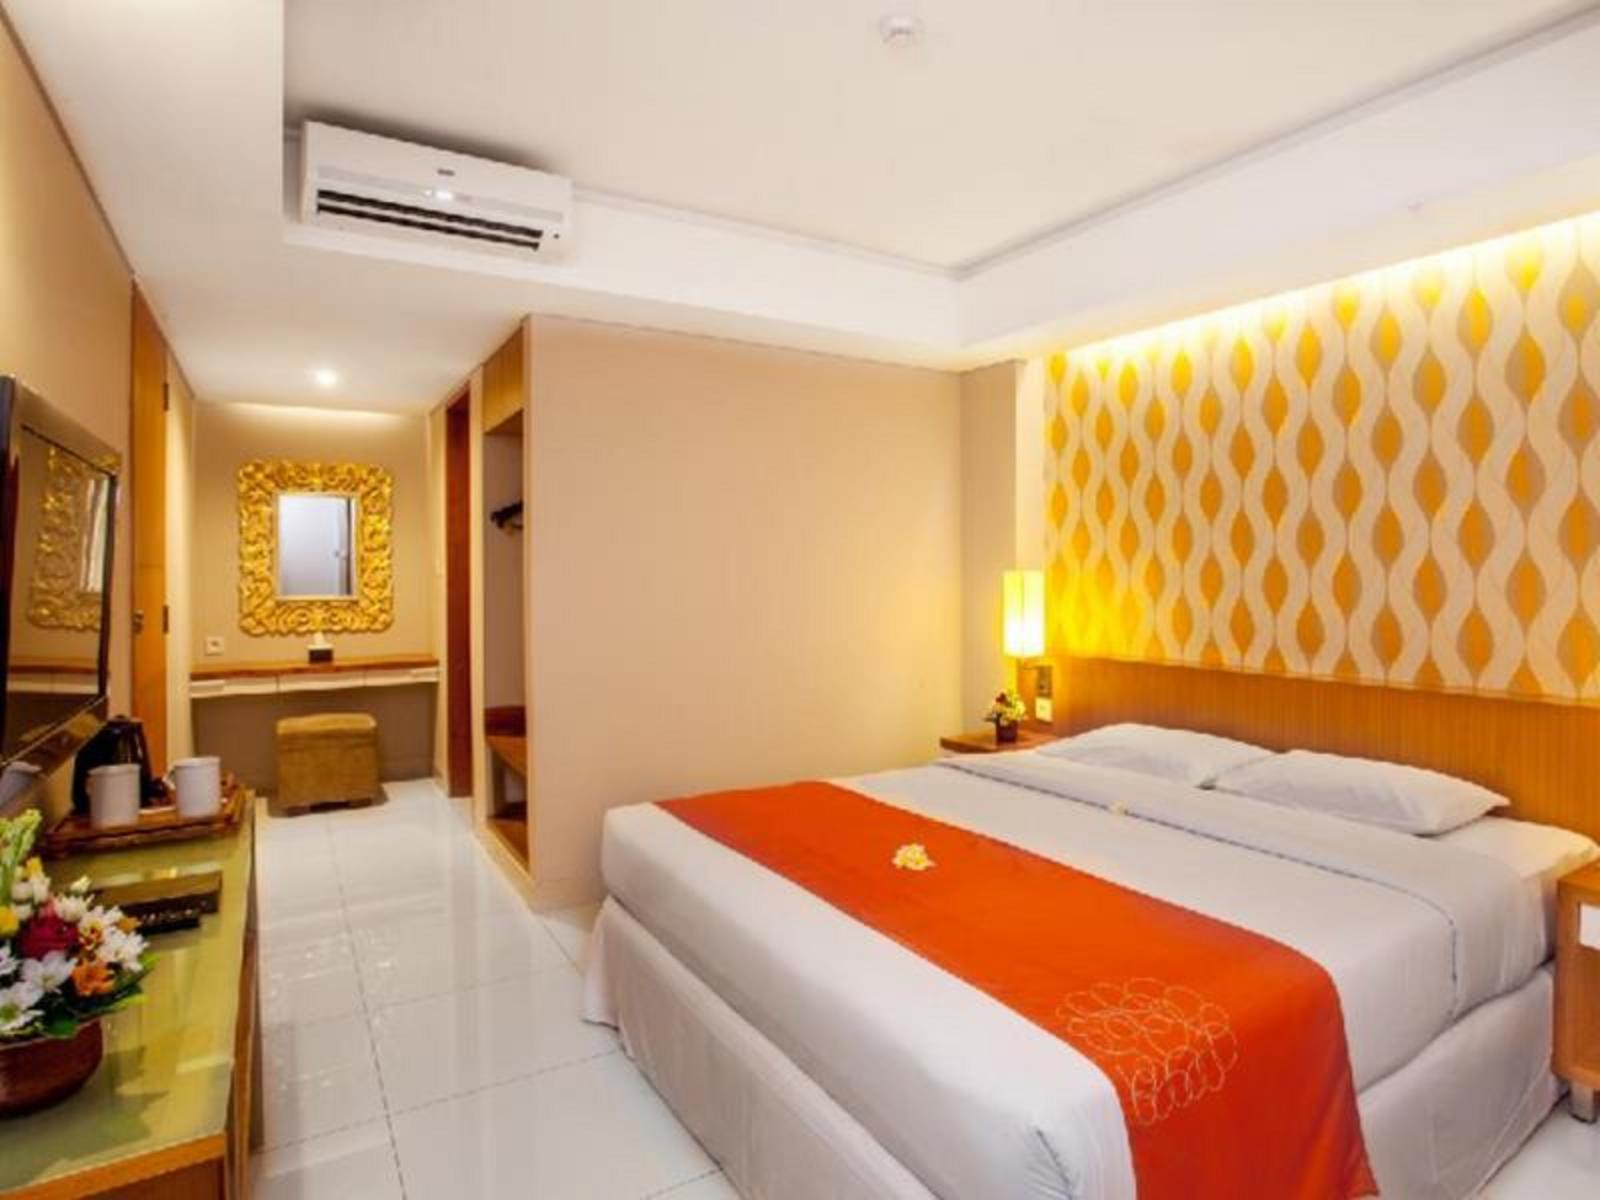 Adhi Jaya Sunset Hotel Room (5)